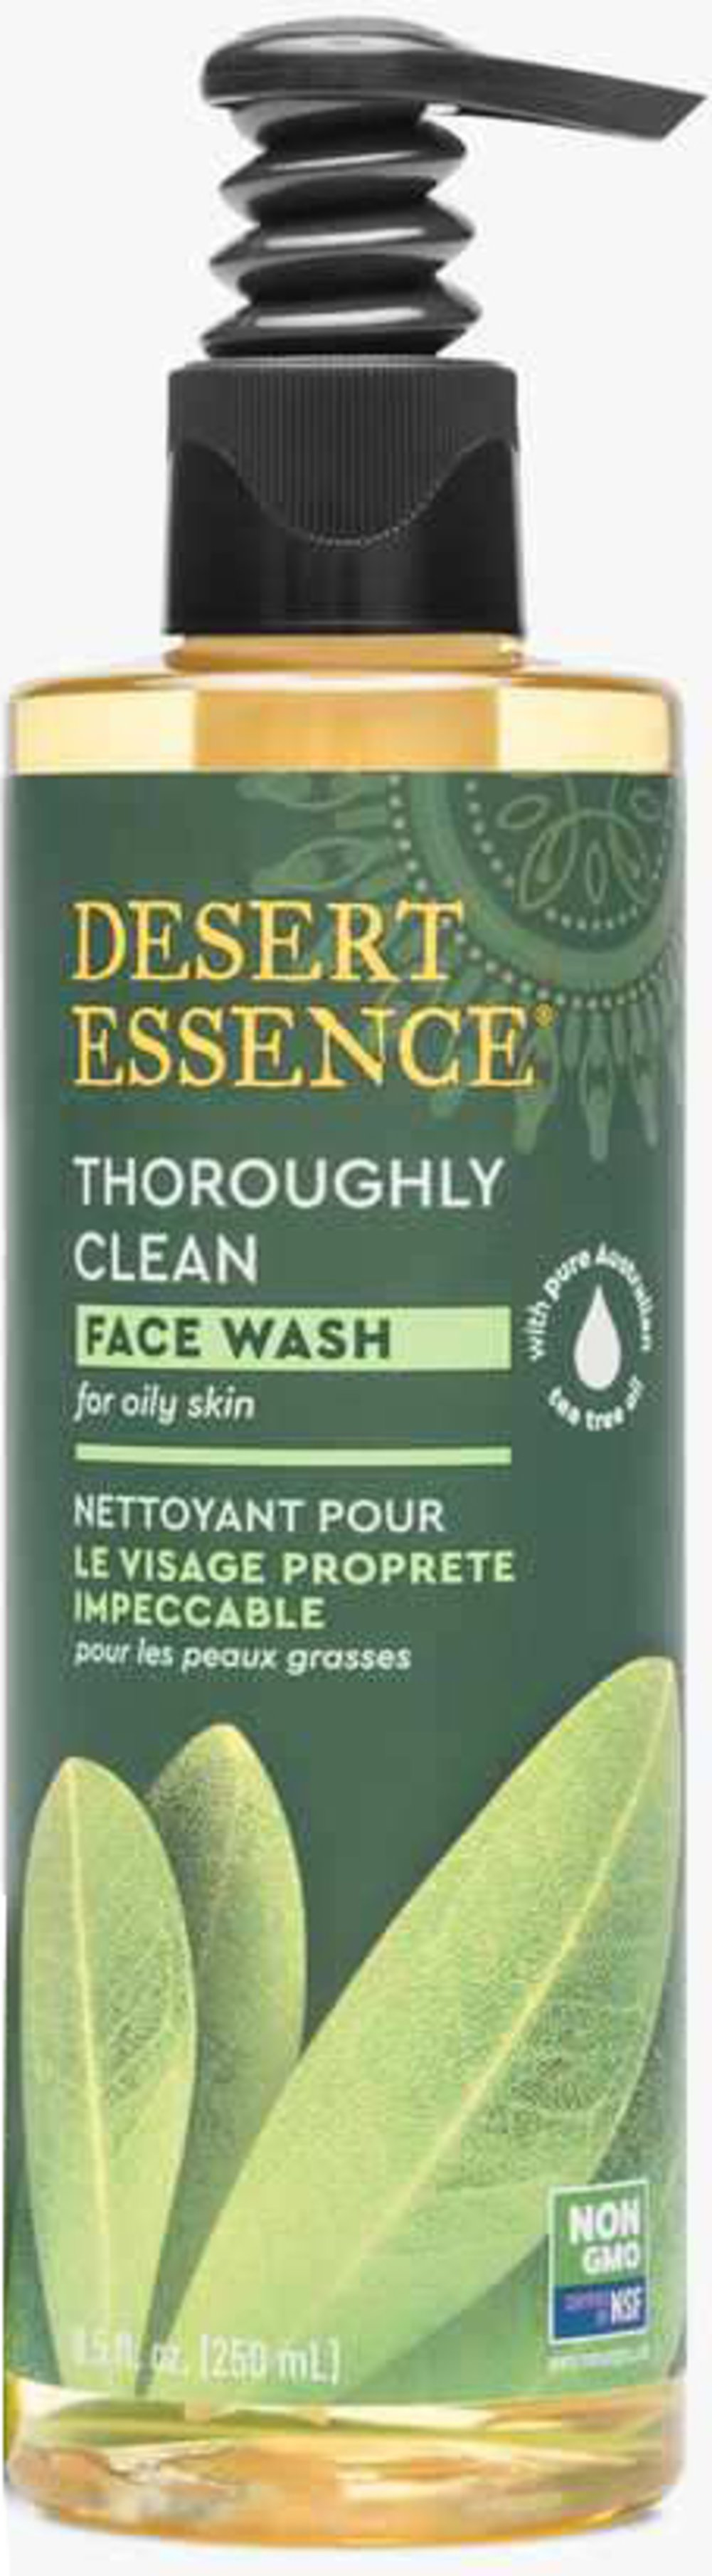 Tea Tree Oil Thoroughly Clean Face Wash for Oily/Combination Skin <p><b>From the Manufacturer's Label: </p></b><p>Desert Essence Thoroughly Clean Face Wash is a gentle cleansing solution that leave your skin feeling clean and silky. This unique face wash contains natural organic Tea Tree Oil. Included  also are extracts of Goldenseal, Hawaiian White Ginger, and the essential oil of Chamomile.  </p><p>Mineral rich Bladderwrack, harvested from the sea,